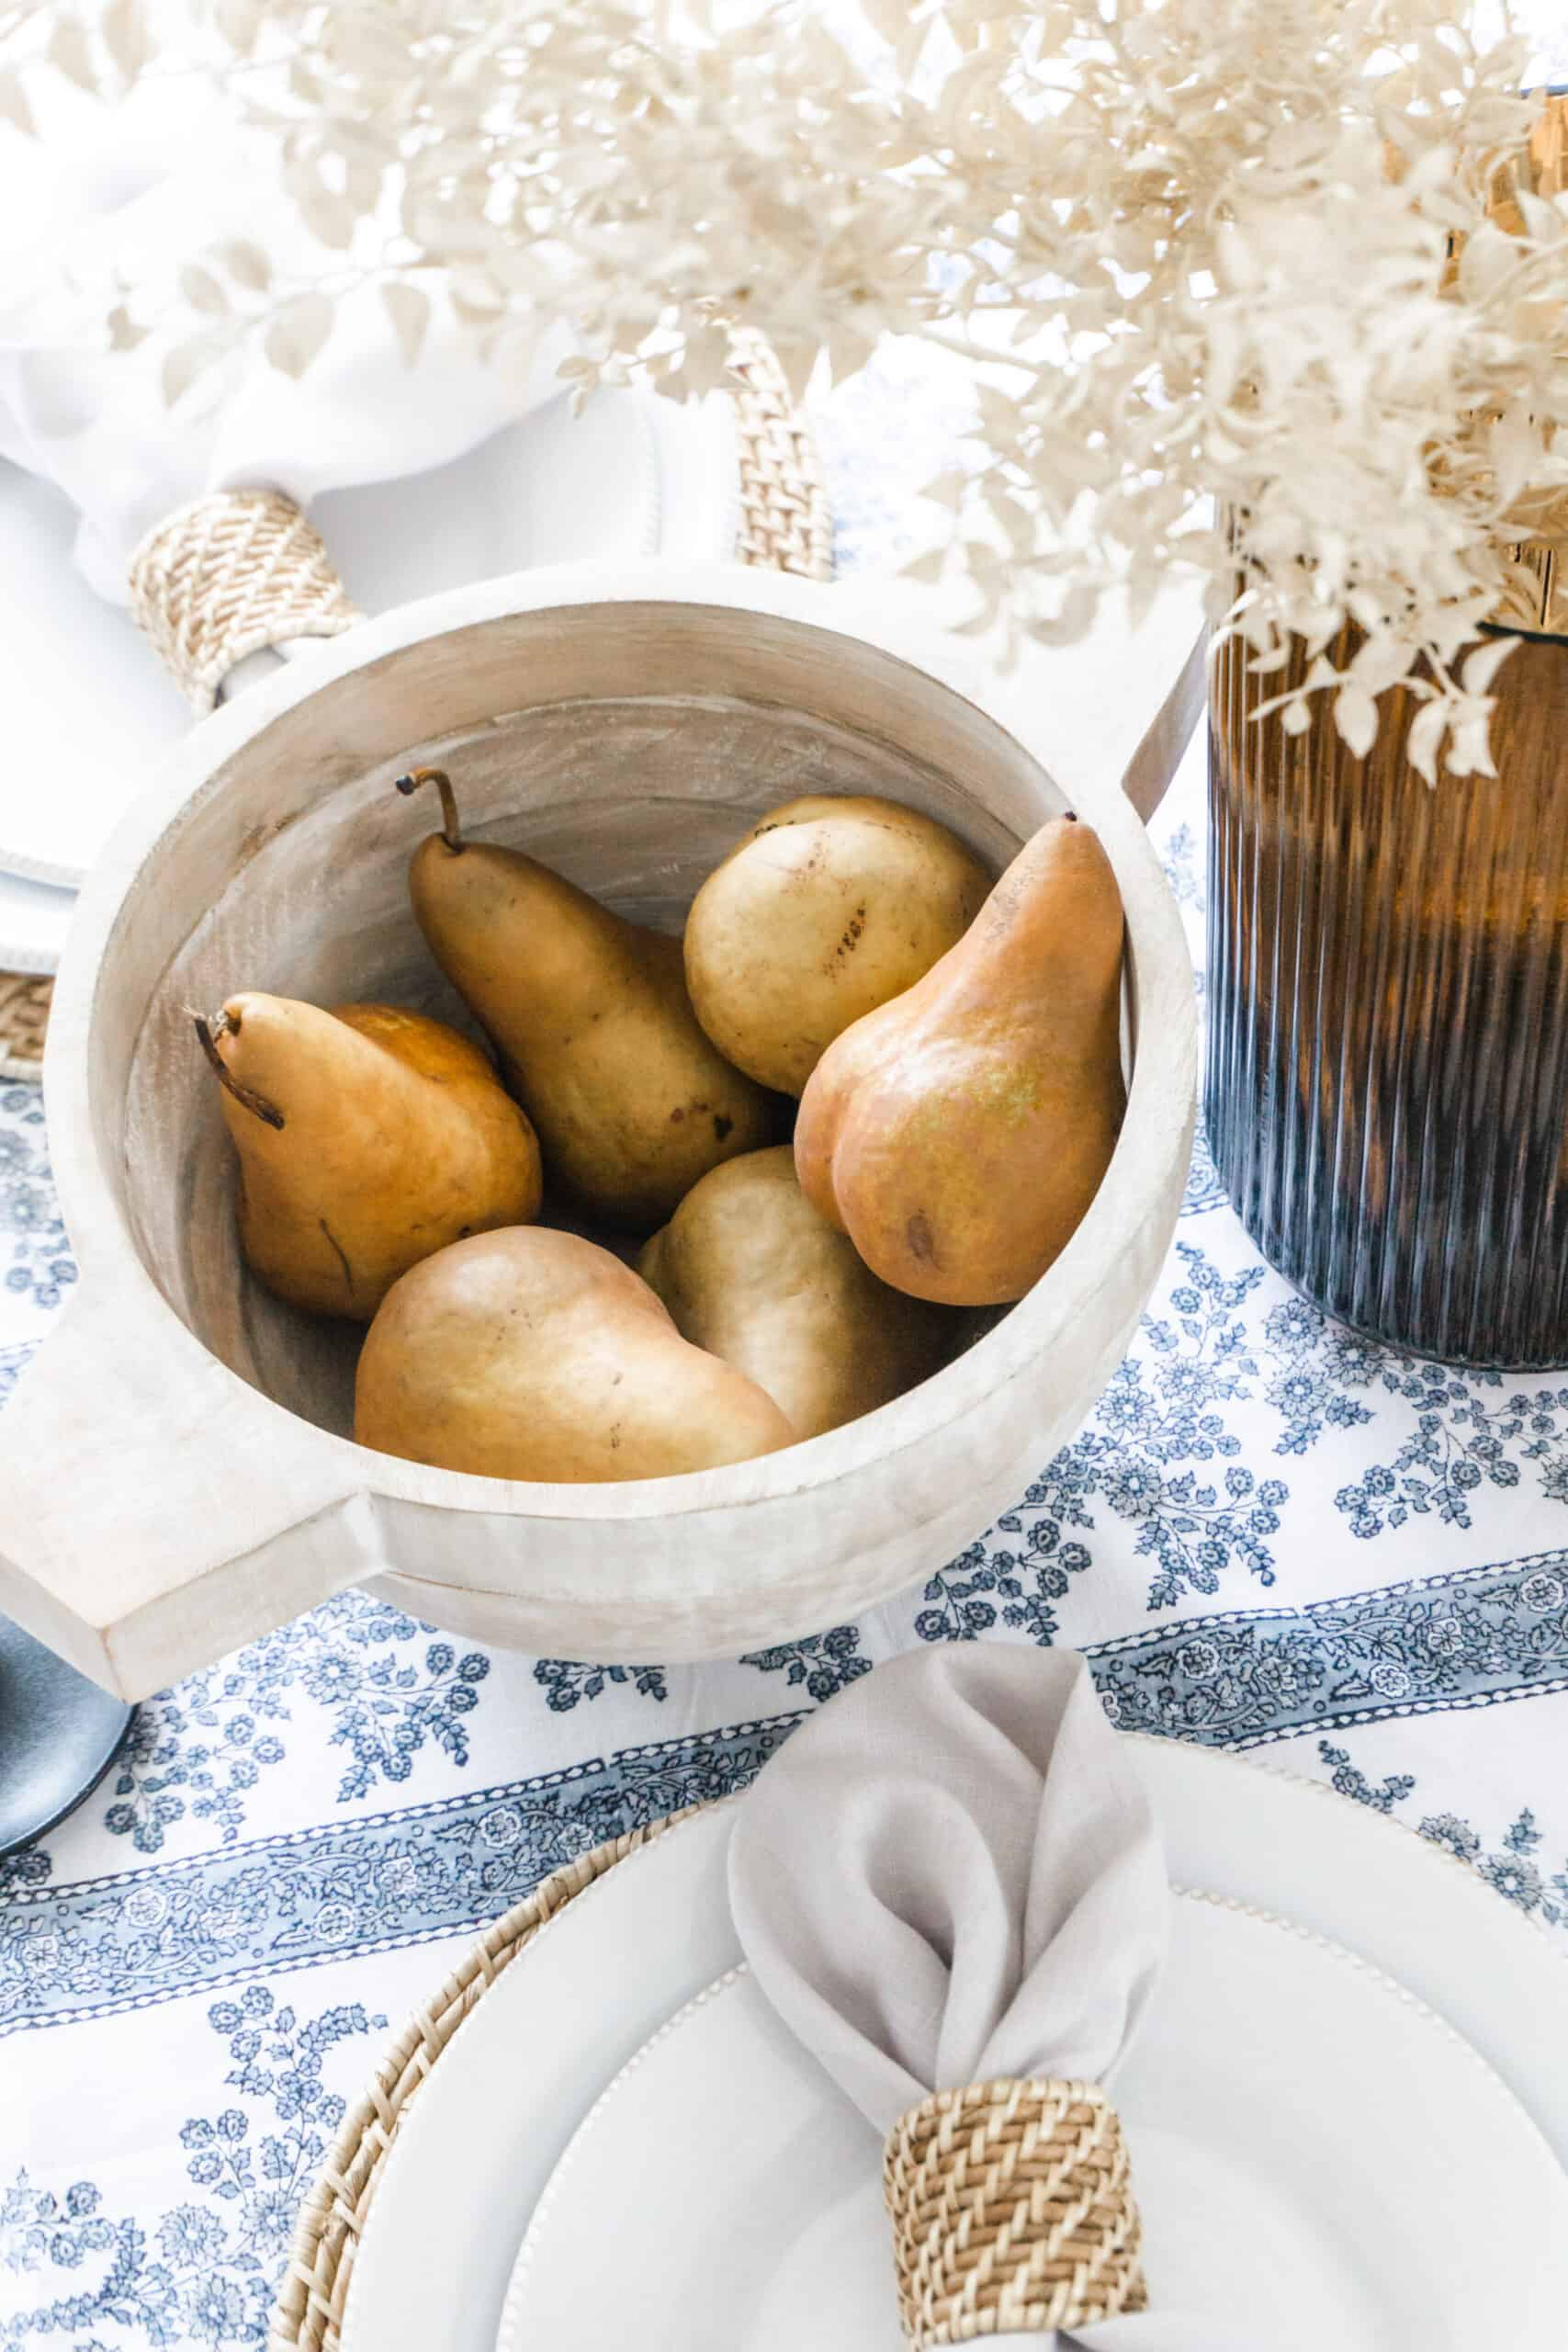 Pears in bowl as a centerpiece on top of blue floral tablecloth.